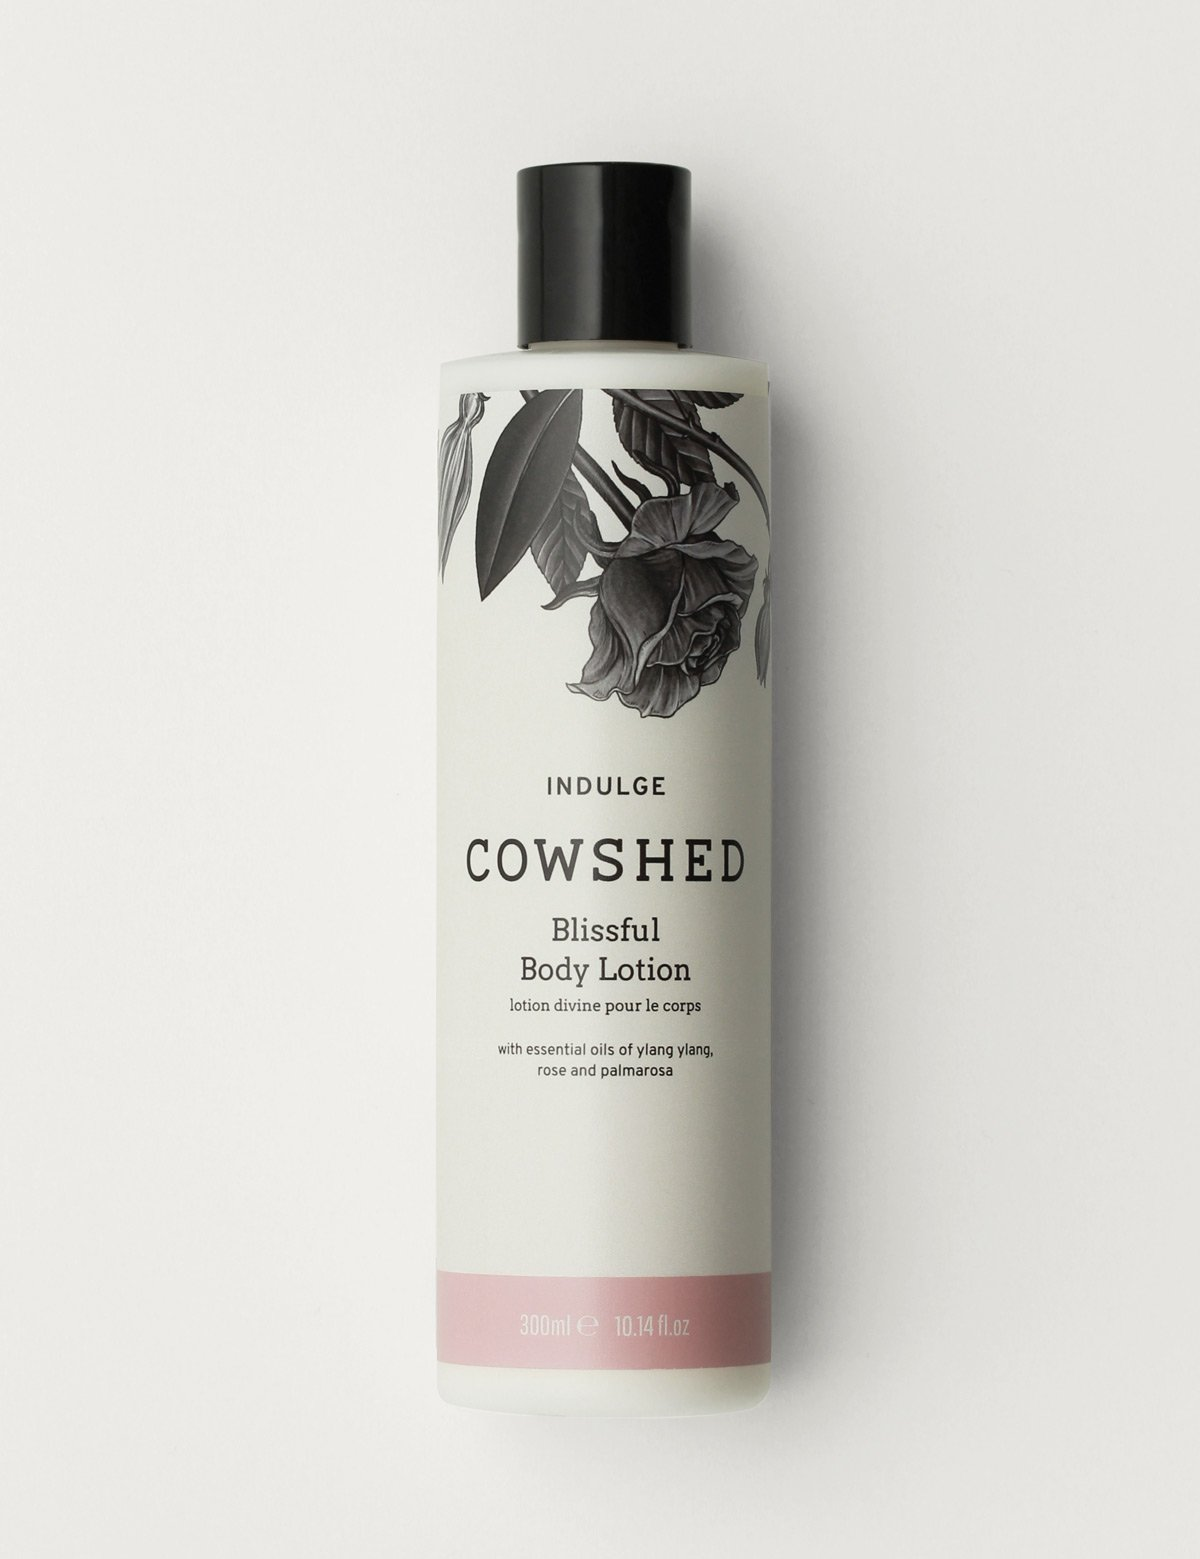 cowshed packaging by spinach branding agency